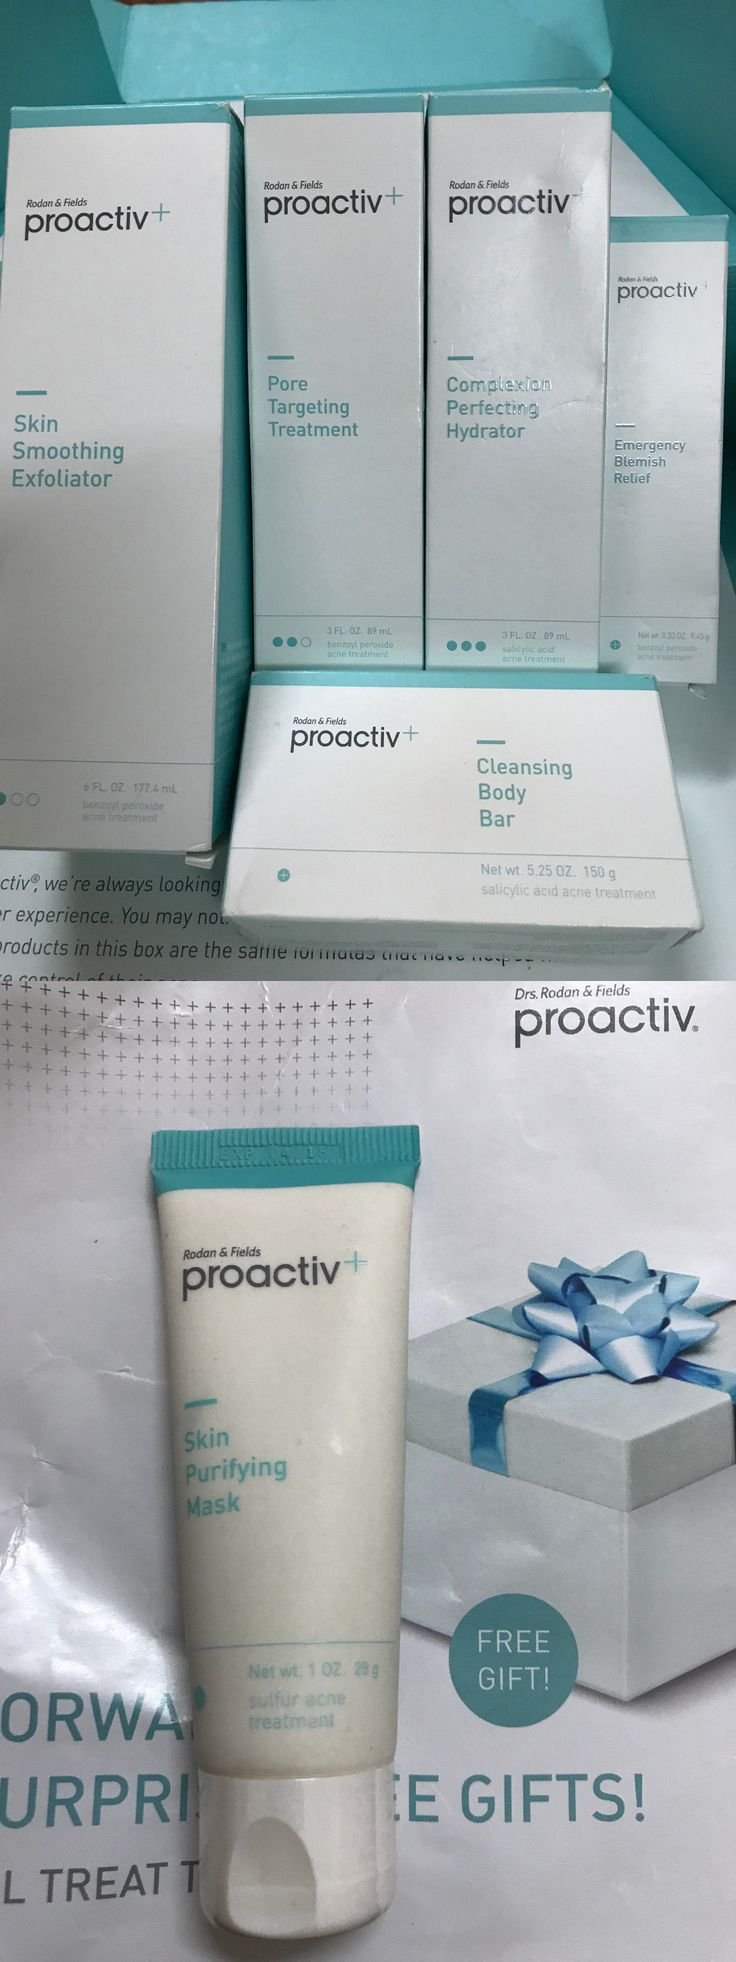 Acne and Blemish Treatments: Proactiv+ Plus 3 Step Acne Treatment System 90 Day Teen Kit -> BUY IT NOW ONLY: $33.99 on eBay!